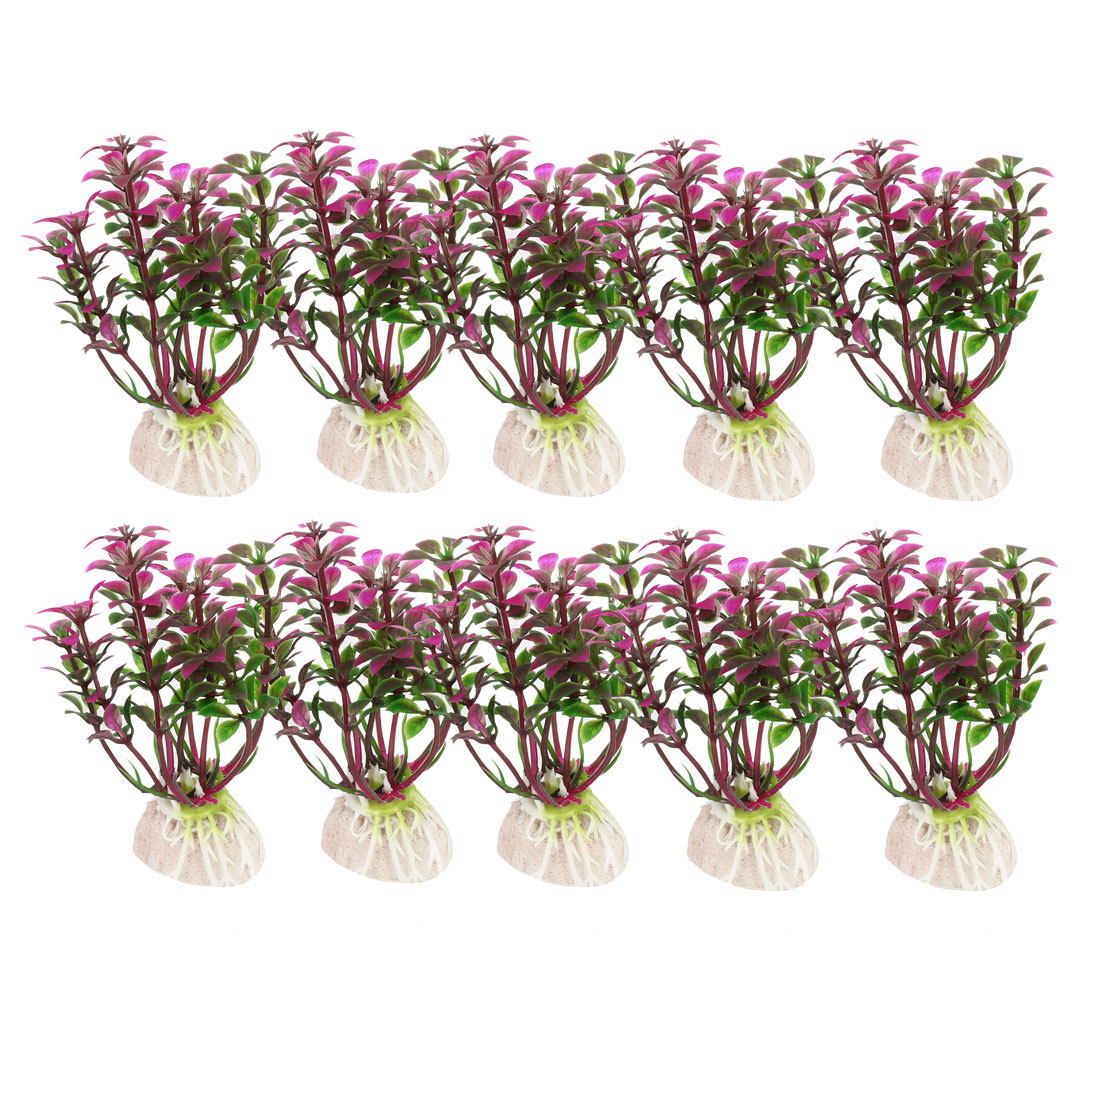 "Aquarium Landscaping Underwater Plant Grass Decor Fuchsia Green 3.5"" Height 10pcs"